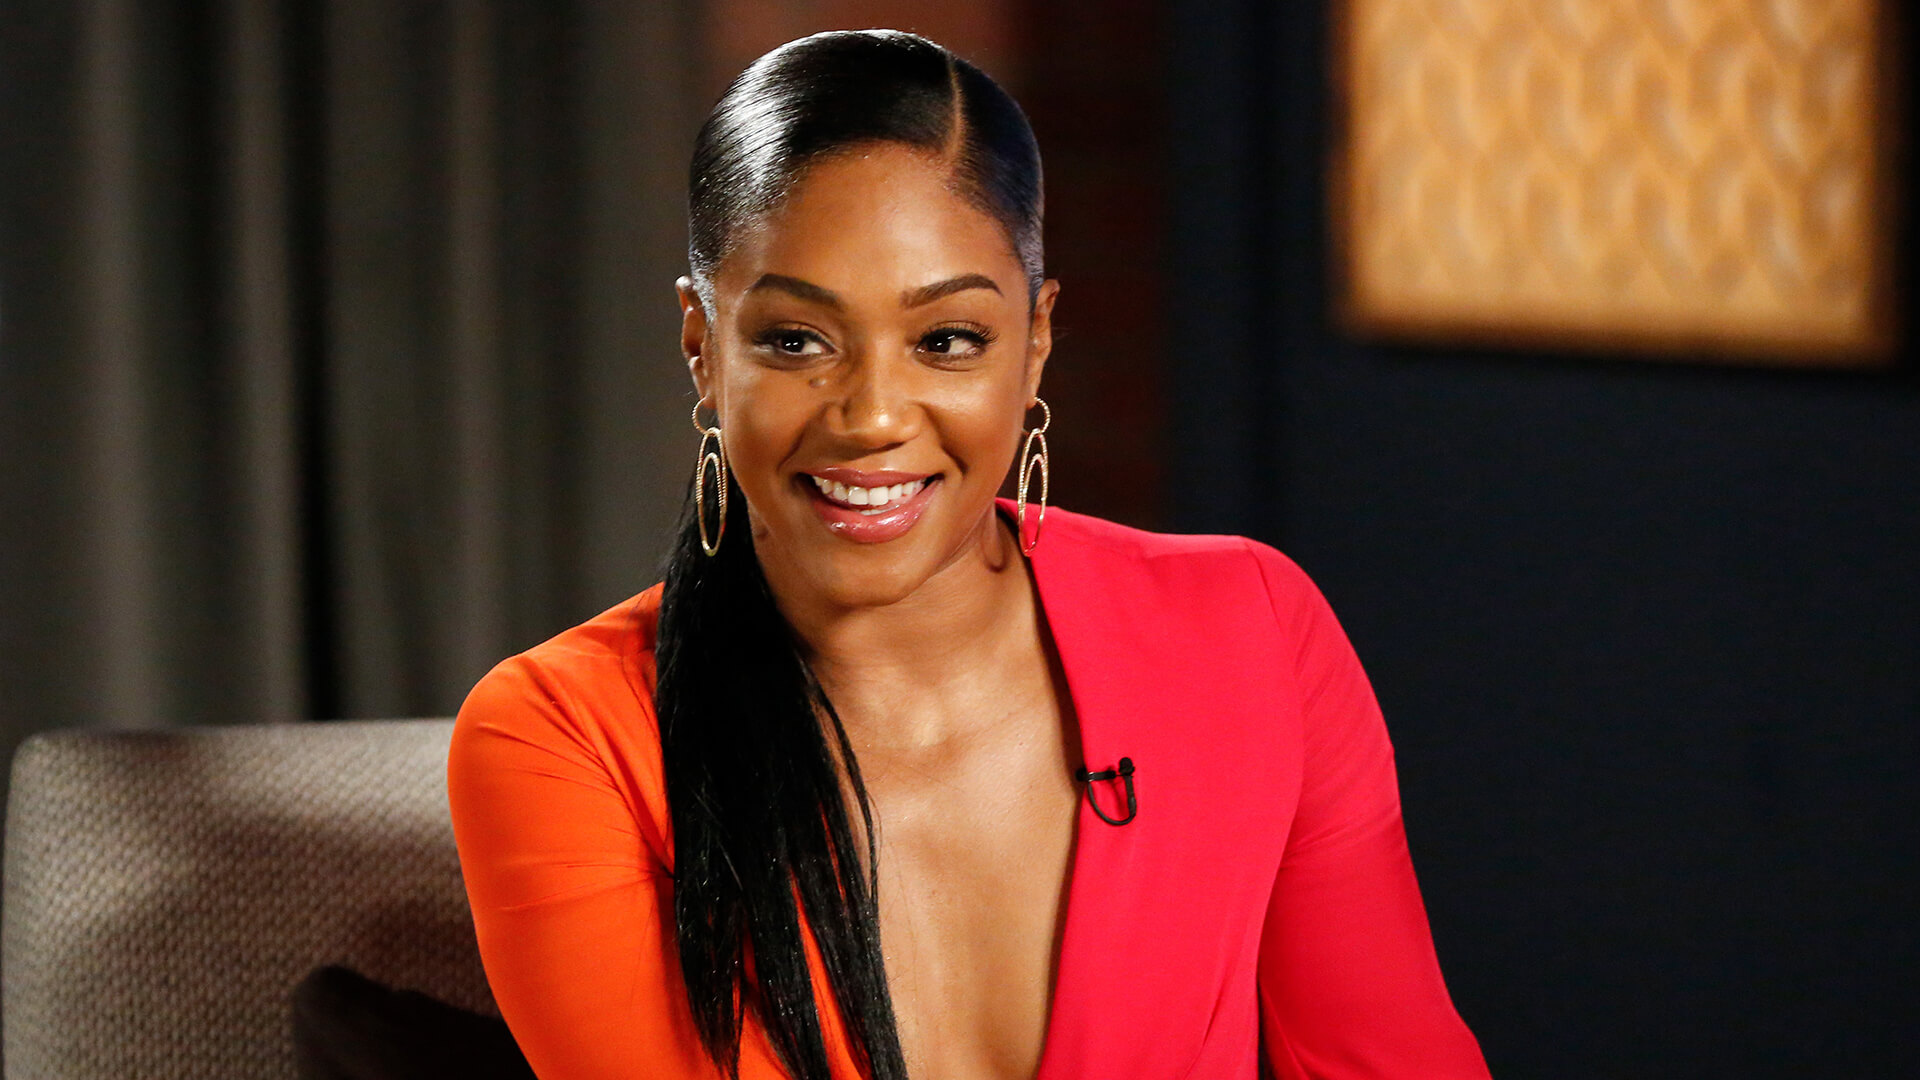 Tiffany Haddish nude (74 pics), photo Boobs, iCloud, cleavage 2016